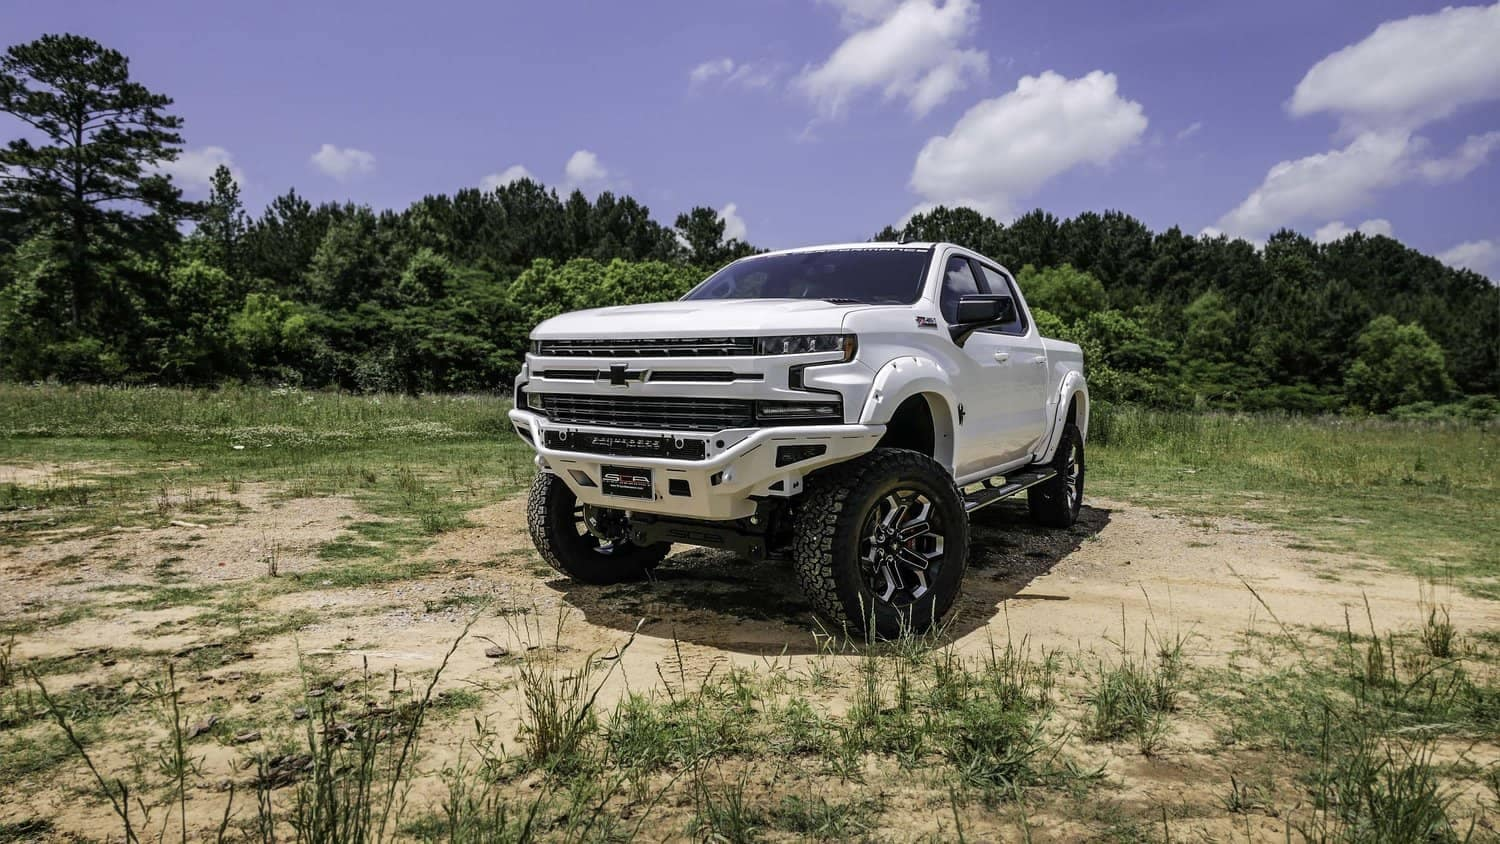 2019_Chevy_Black_Widow_White_with_Bumper